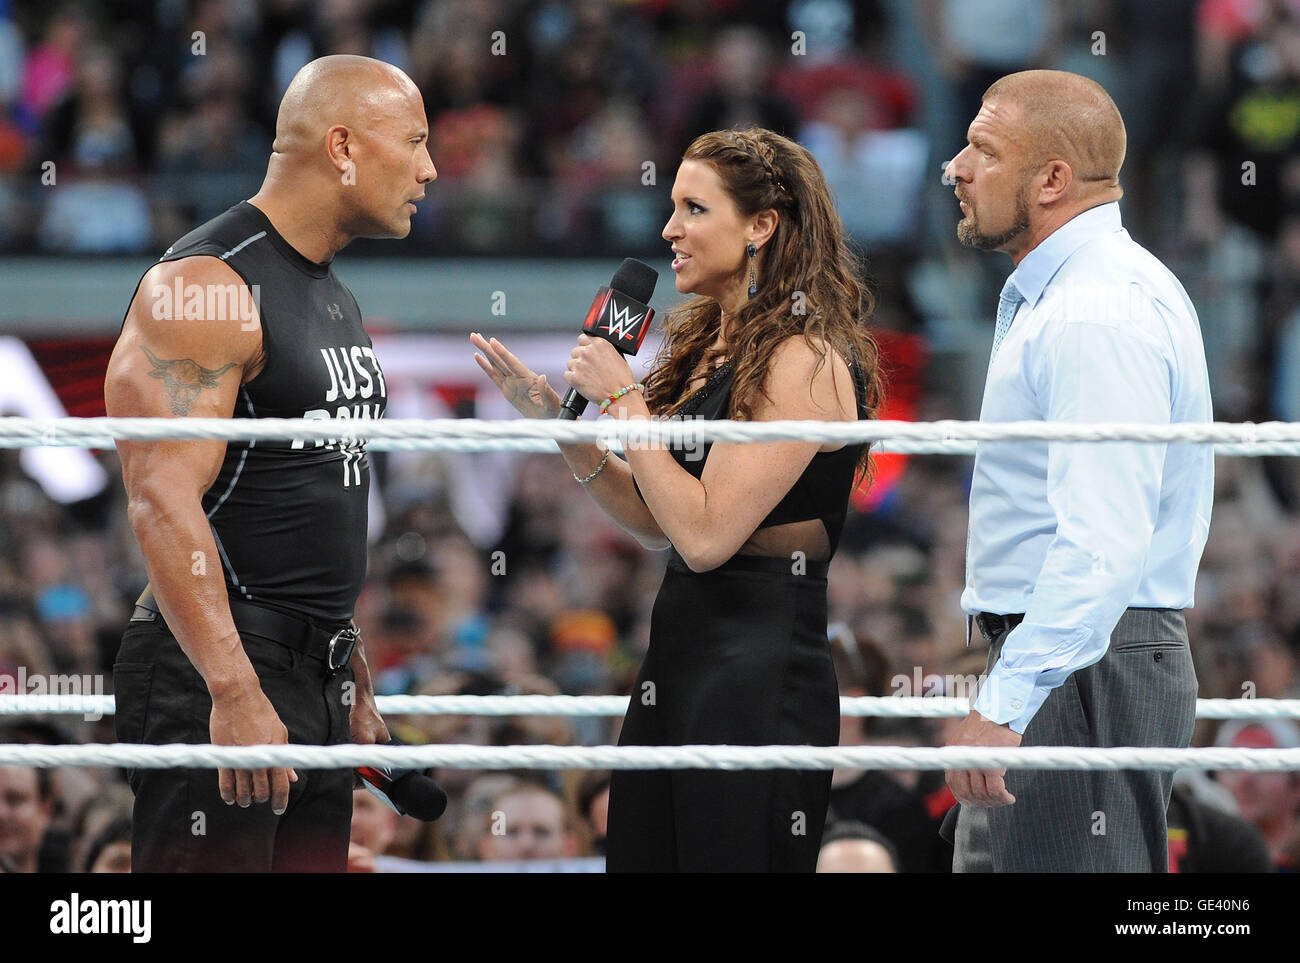 Santa Clara, Ca-  March 29: Dwayne 'The Rock' Johnson is confronted by Stephanie McMahon and Triple H at - Stock Image